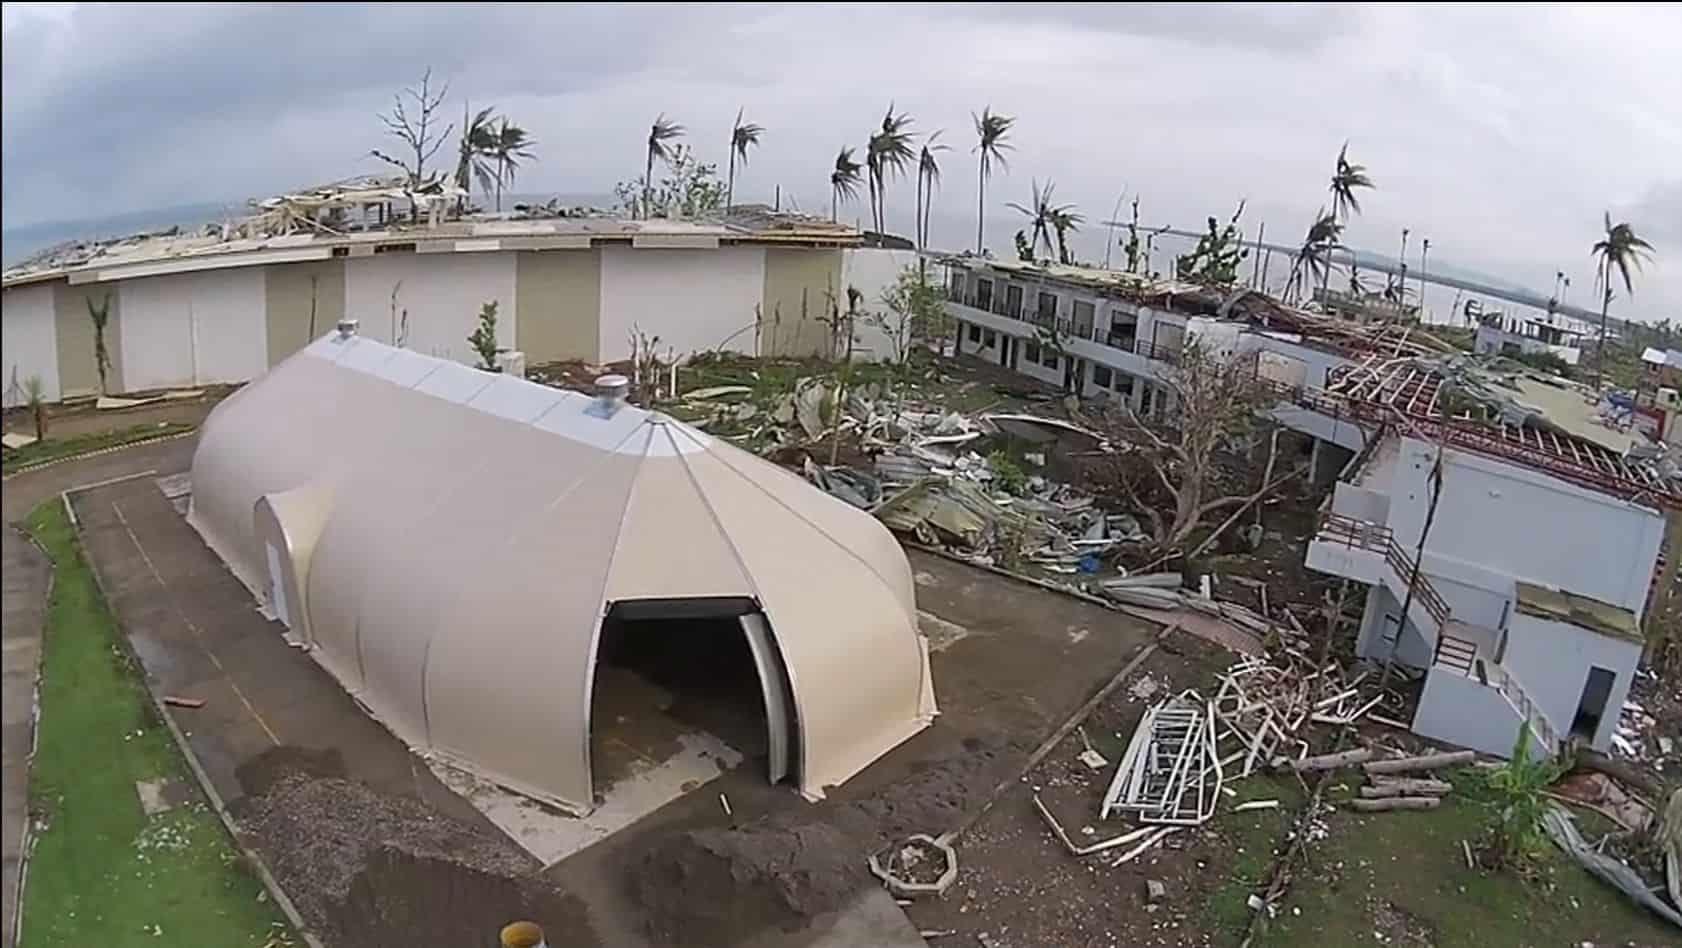 The Sprung Structure relocatable building, 16-meter-by-32-meter, will be erected in Barbuda to serve as Samaritan's Purse's operational and supply hub in the storm-battered region. In this photo is the Spring Structure where it was on location in the Philippines as part of the response to help Typhoon Haiyan victims.